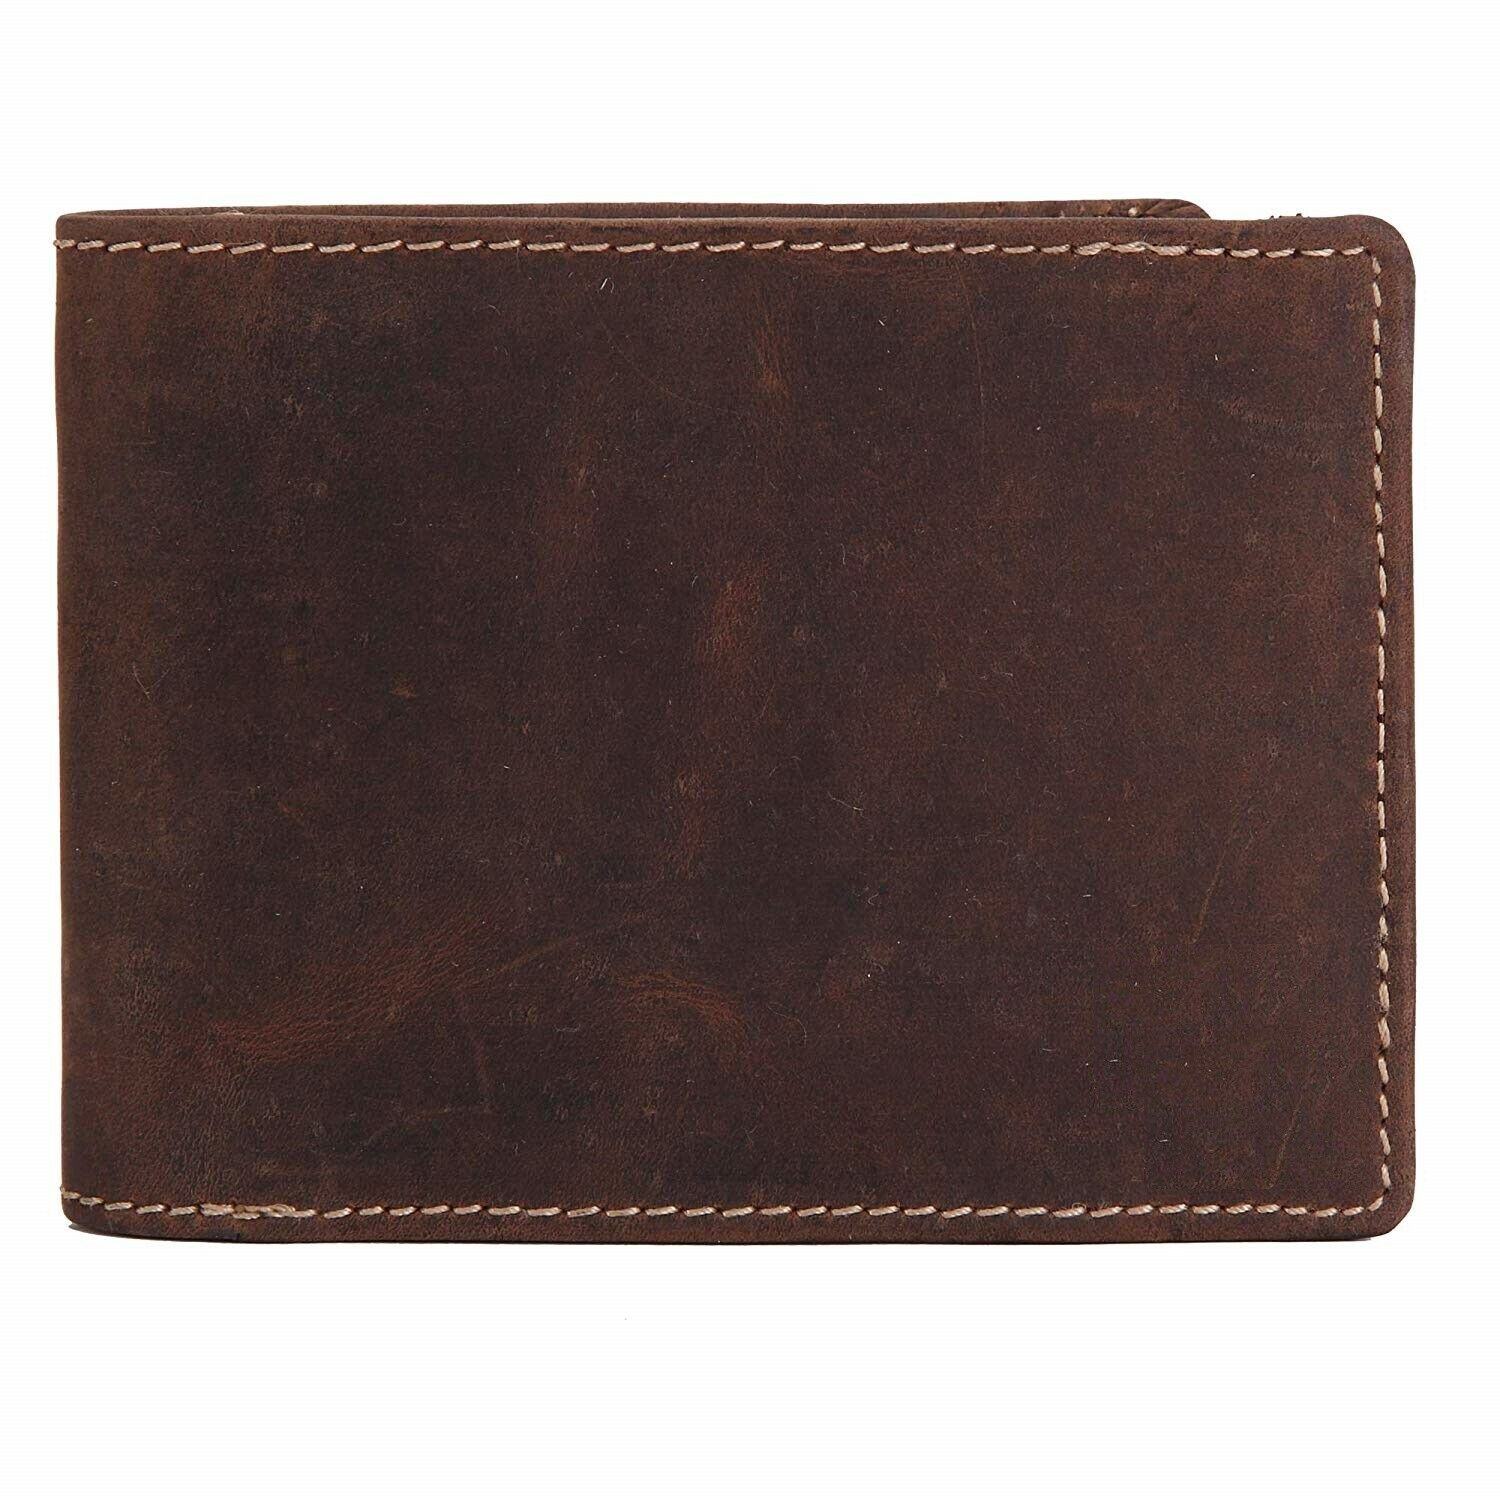 Crazy Horse Genuine Leather Men's Bifold Wallet with RFID Protection, Brown